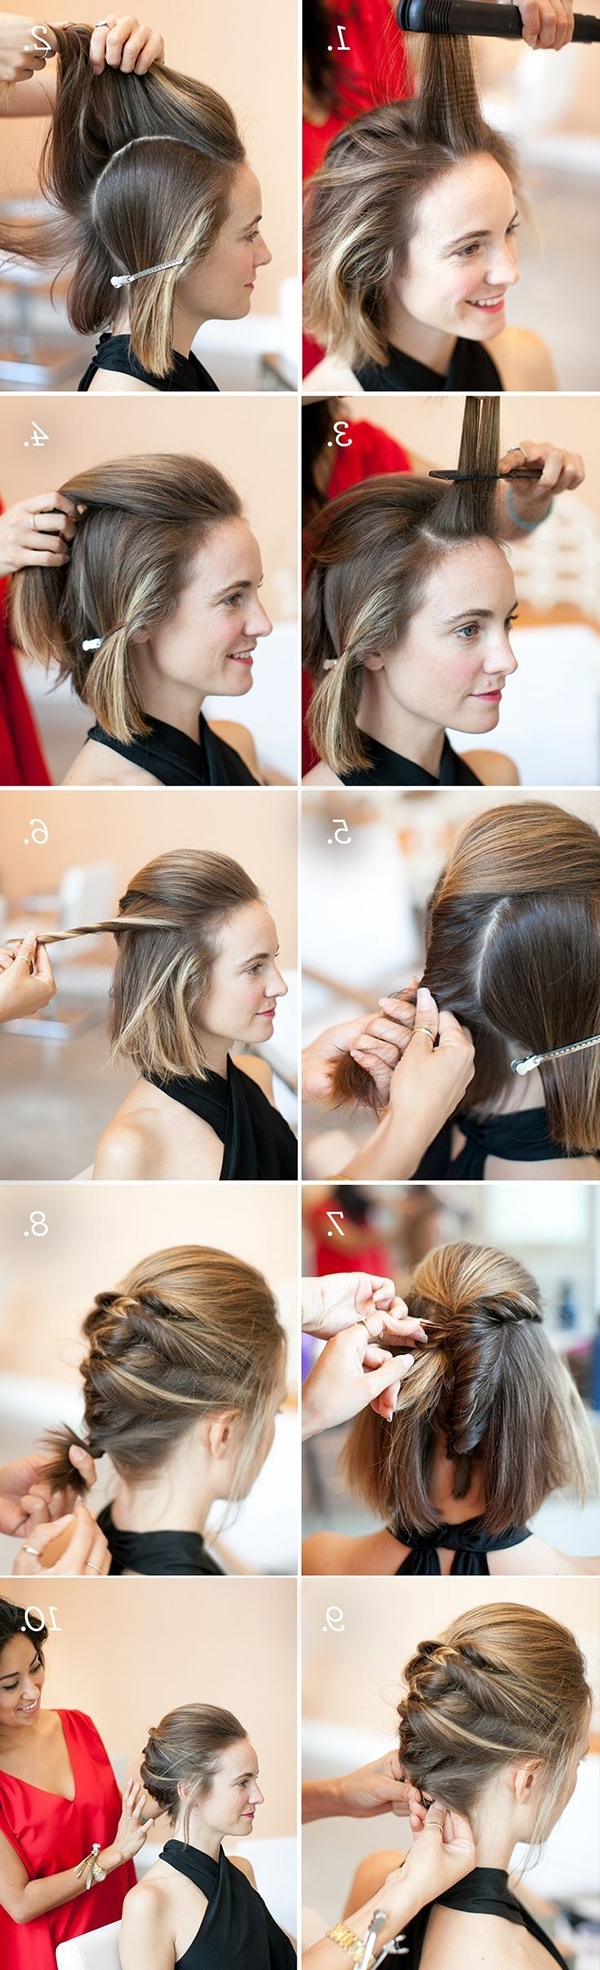 20 Easy No Heat Summer Hairstyles For Girls With Medium Length Hair Throughout Easy Updos For Thick Medium Length Hair (View 3 of 15)